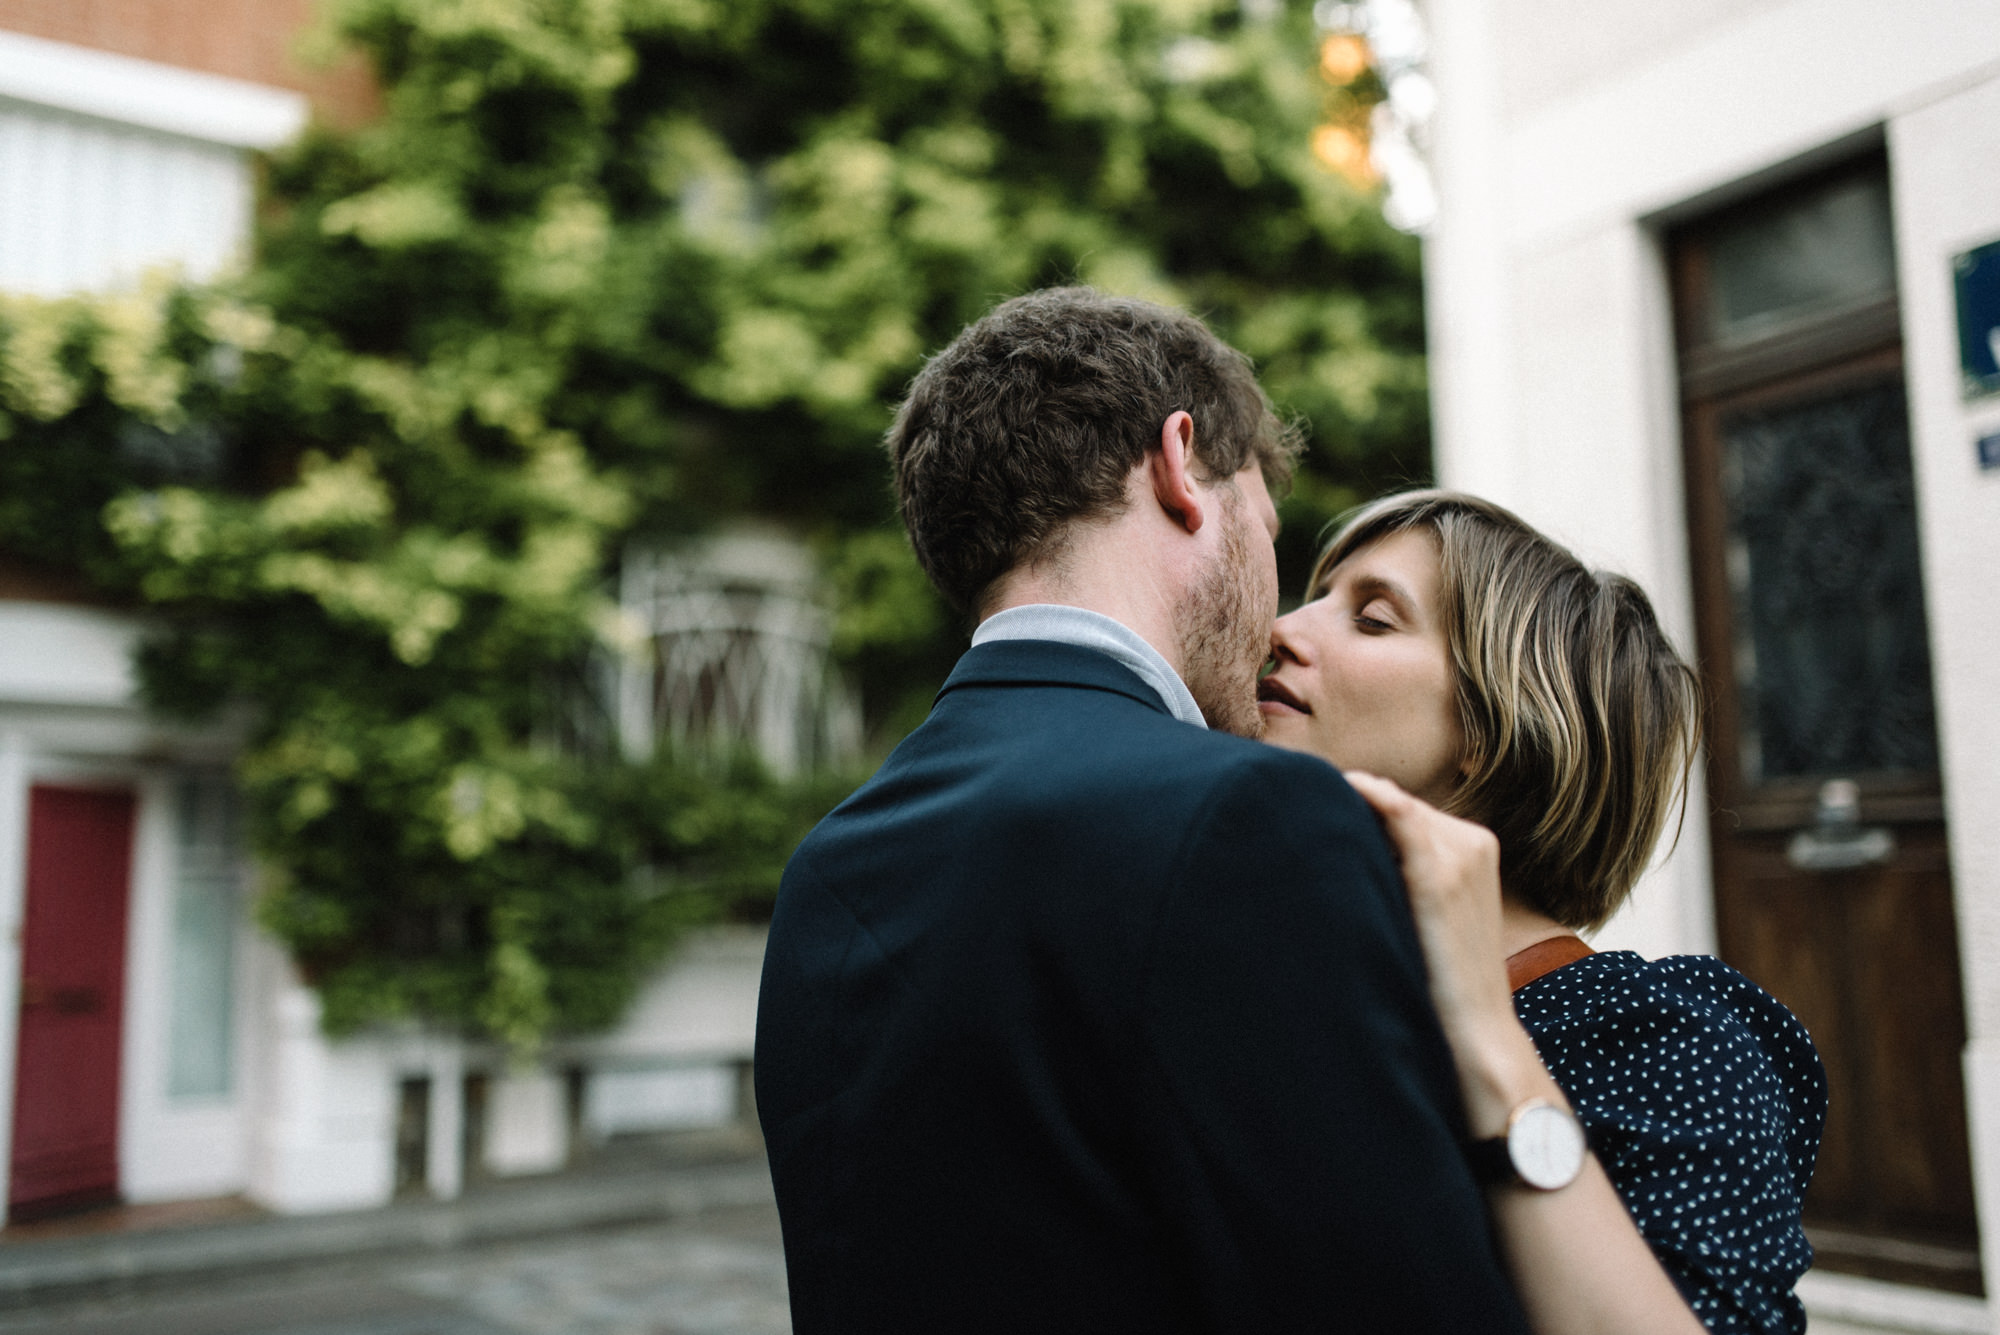 willybroussephotography-engagement-christelle-jr-paris-55